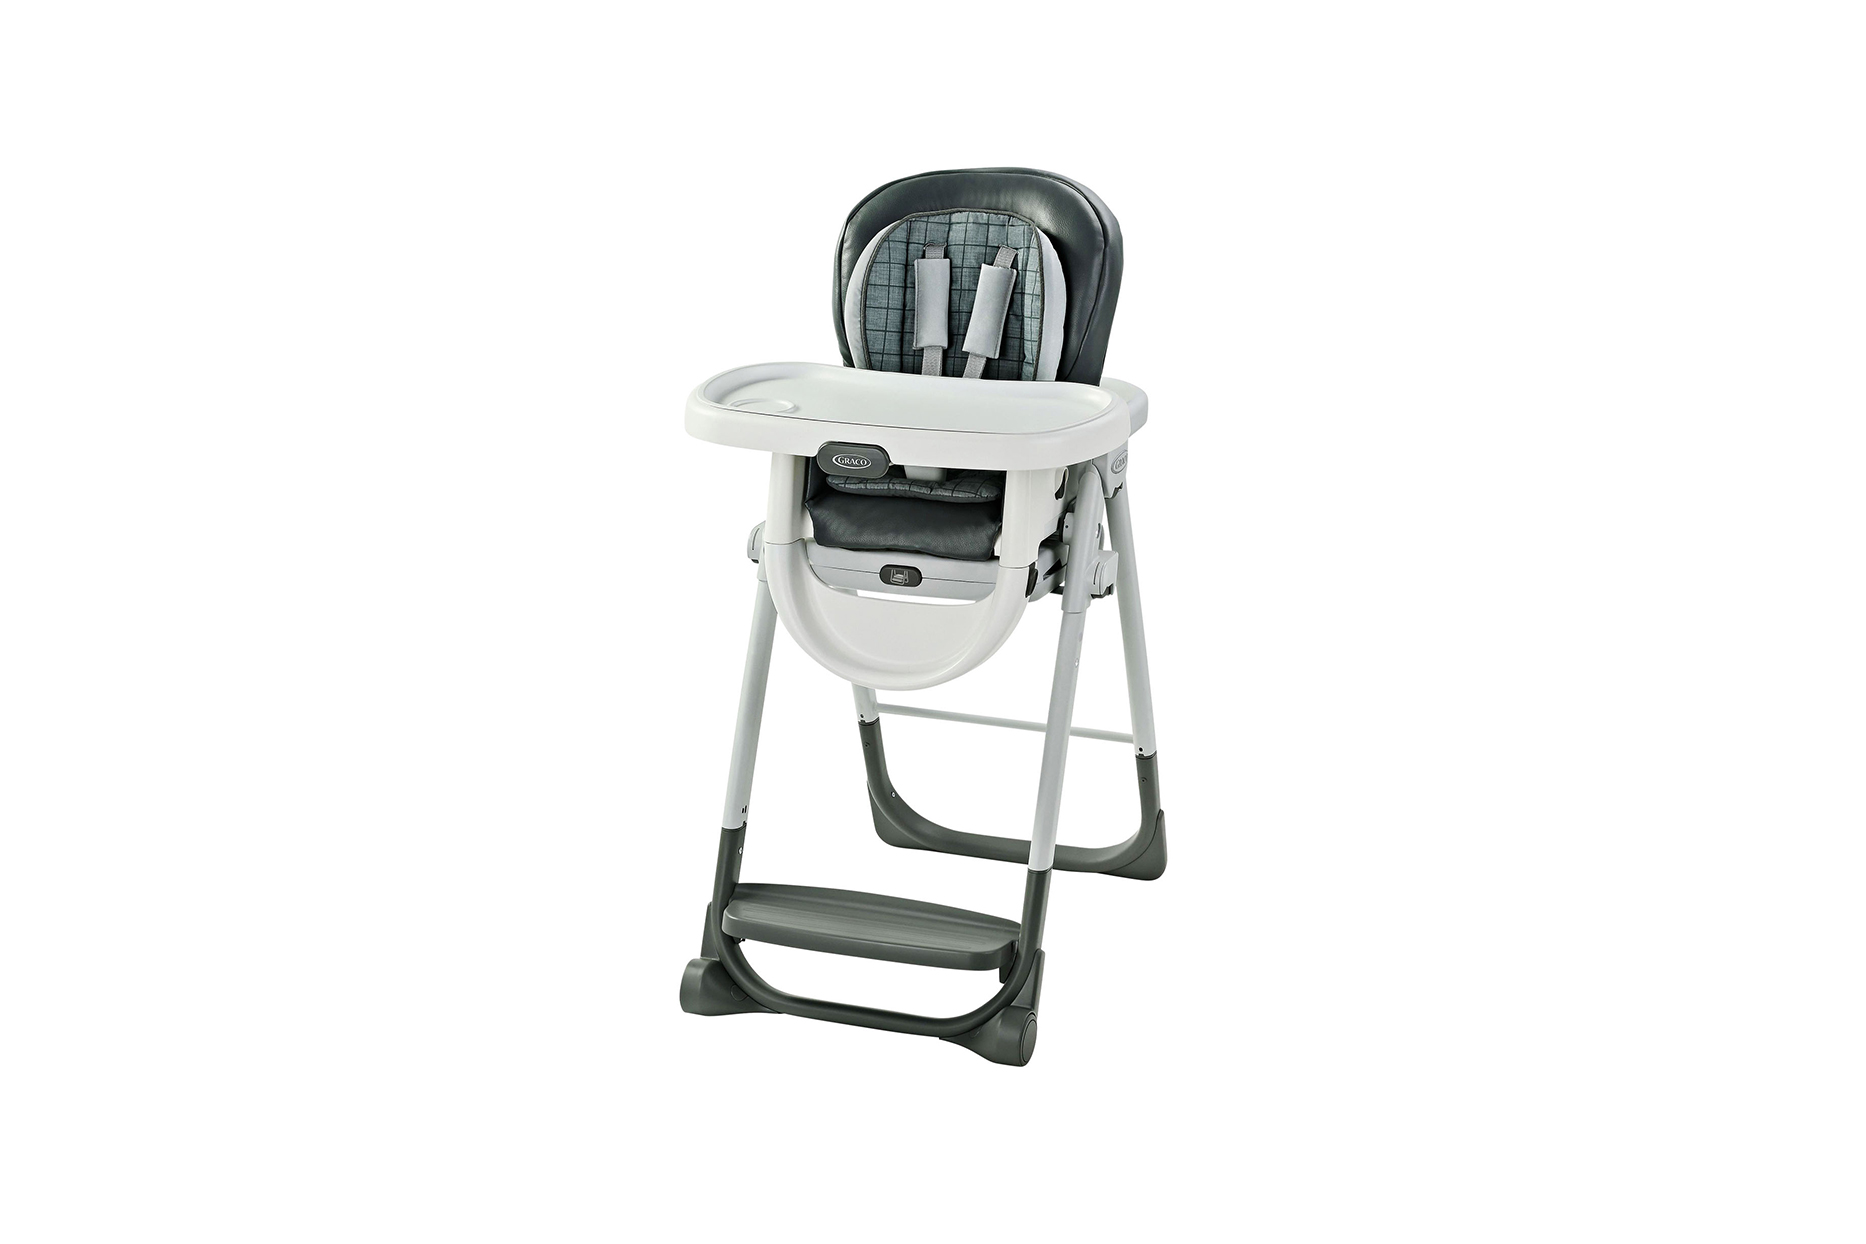 Graco EveryStep 7-in-1